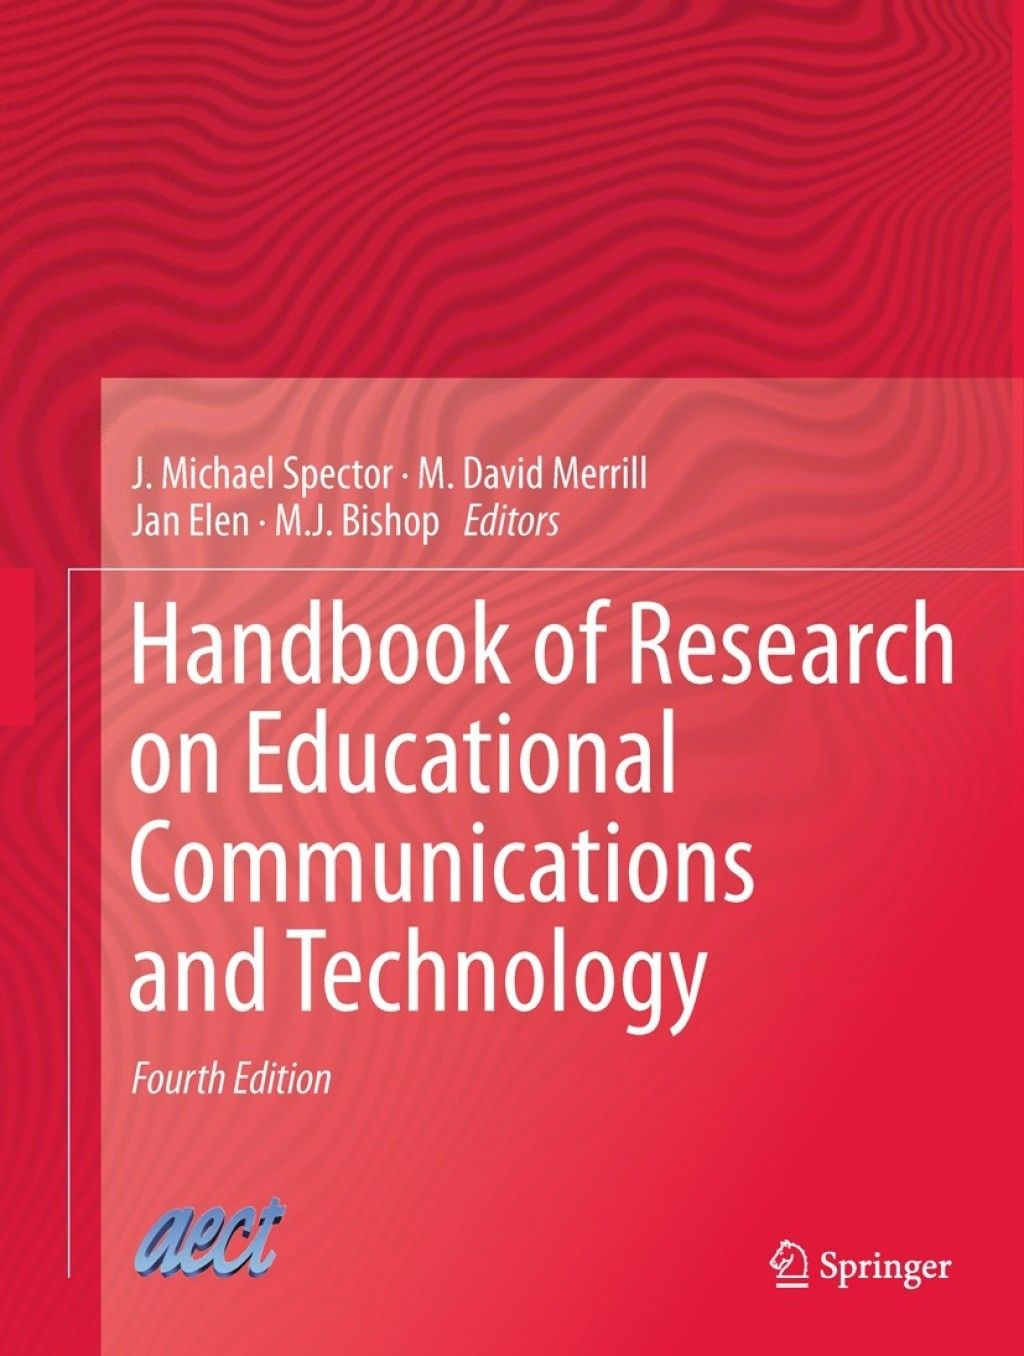 Handbook of Research on Educational Communications and